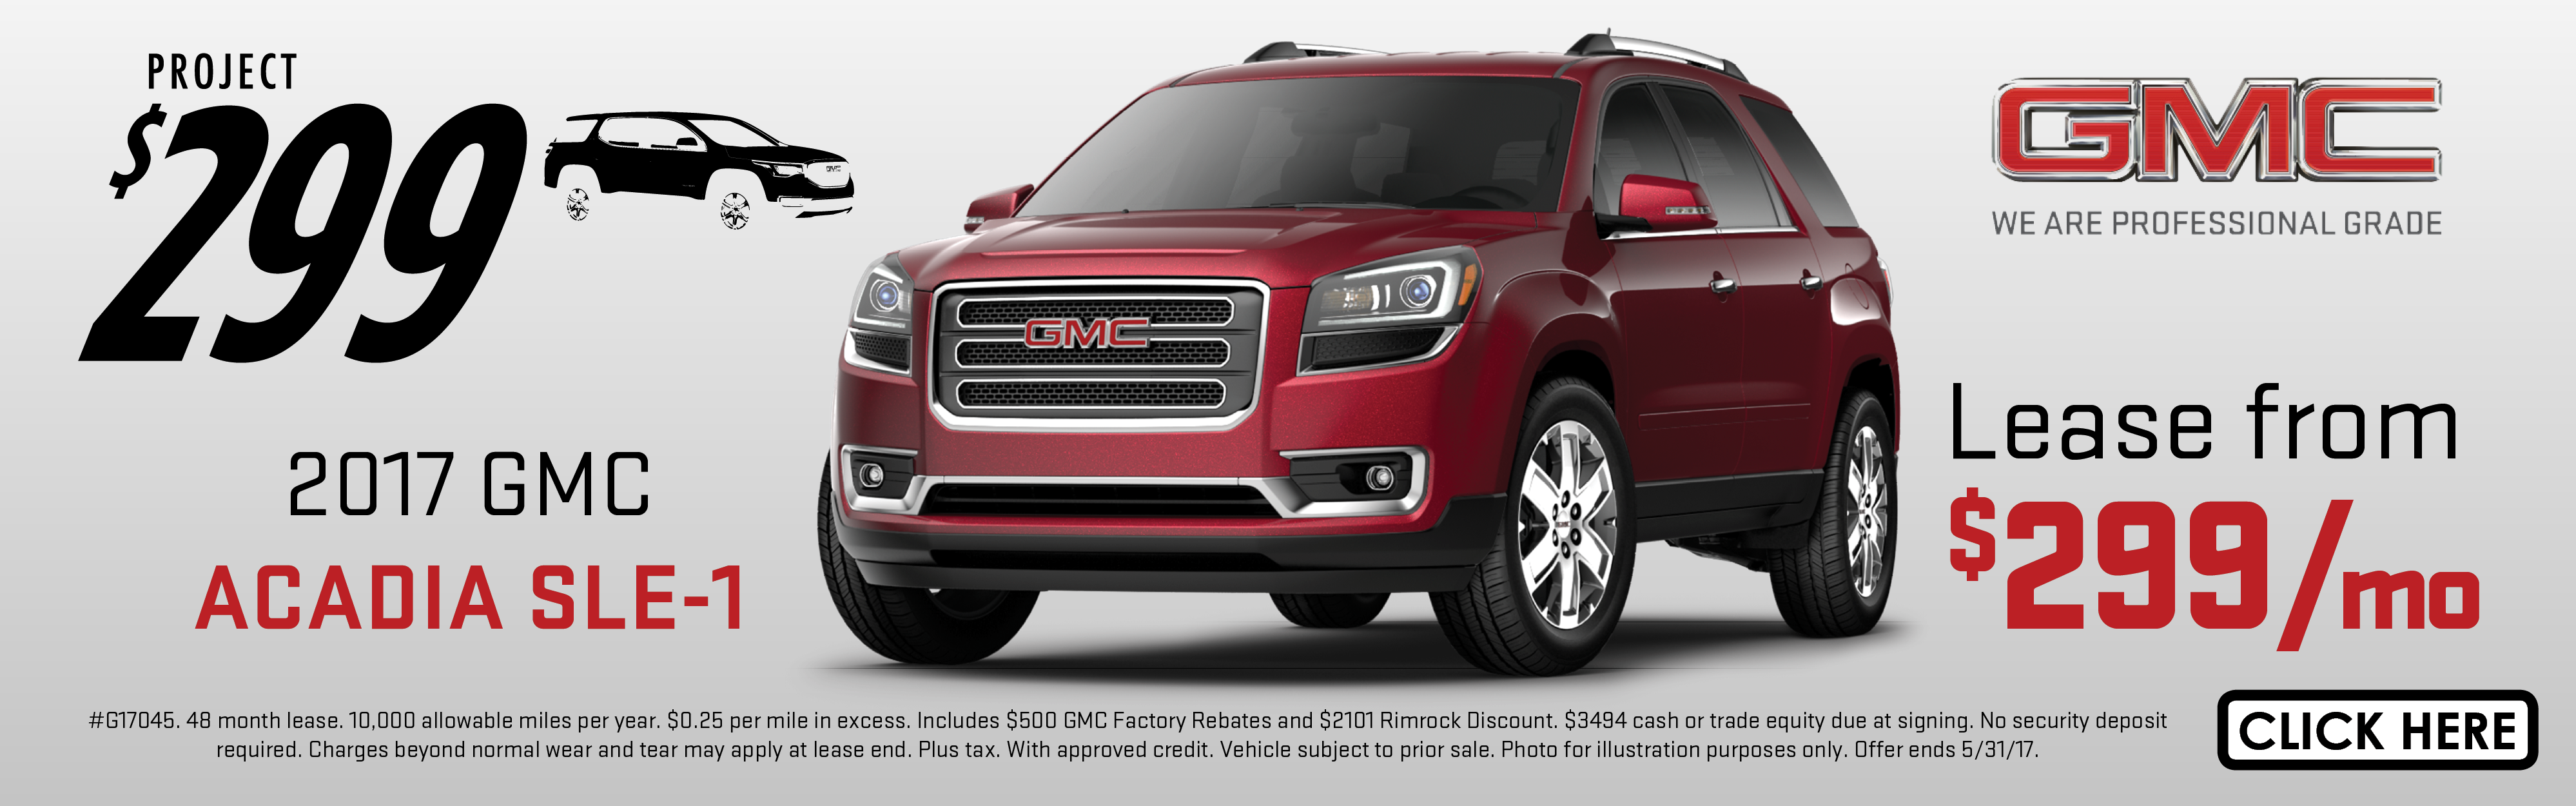 used cars billings mt inspirational rimrock gmc is a billings gmc dealer and a new car and used. Black Bedroom Furniture Sets. Home Design Ideas